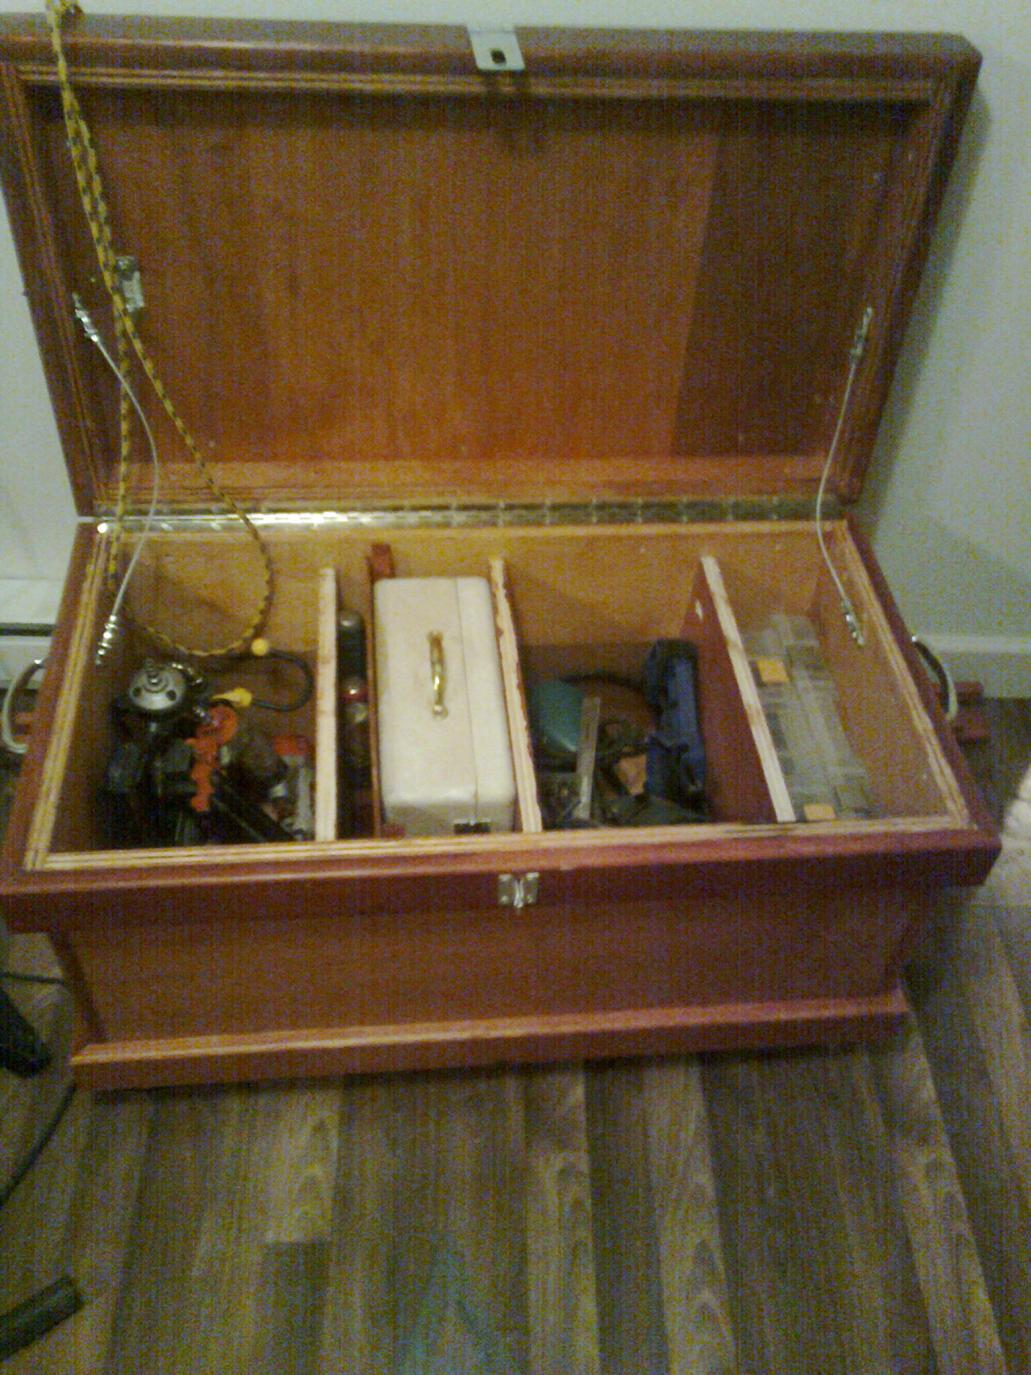 old homemade tool boxes-toolbox7.jpg